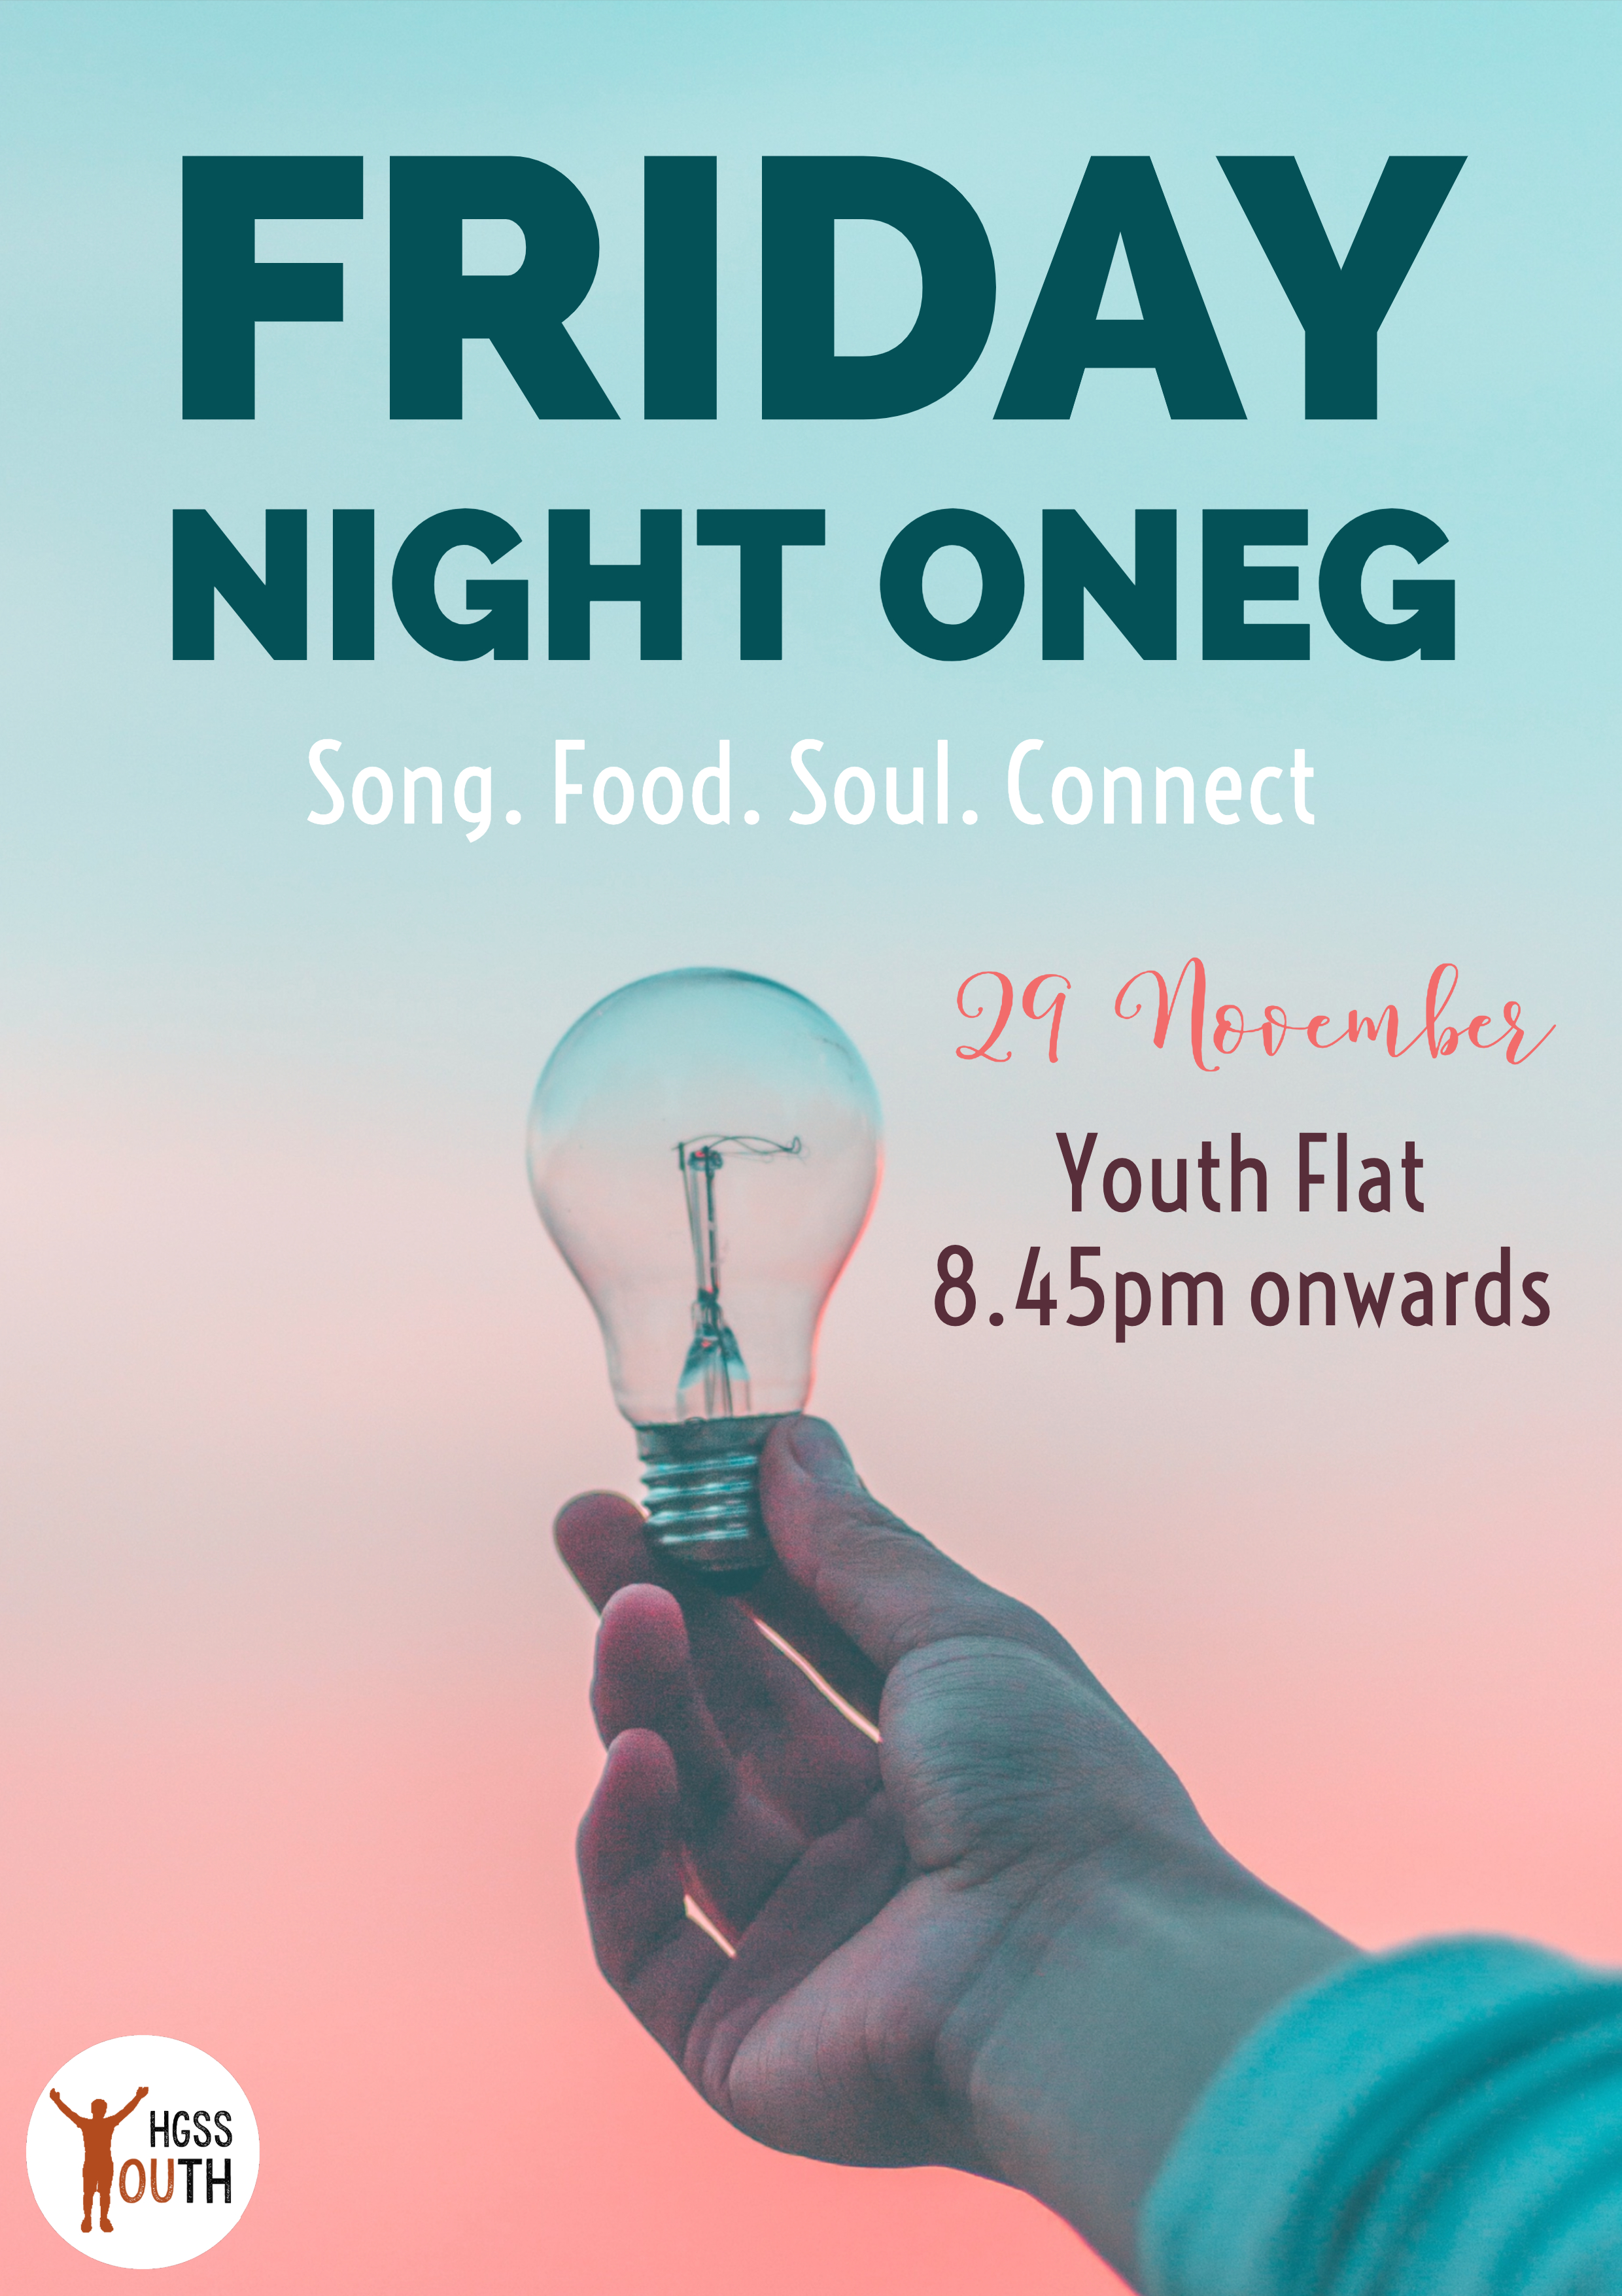 Youth Friday Night Oneg @ 8 Norrice Lea